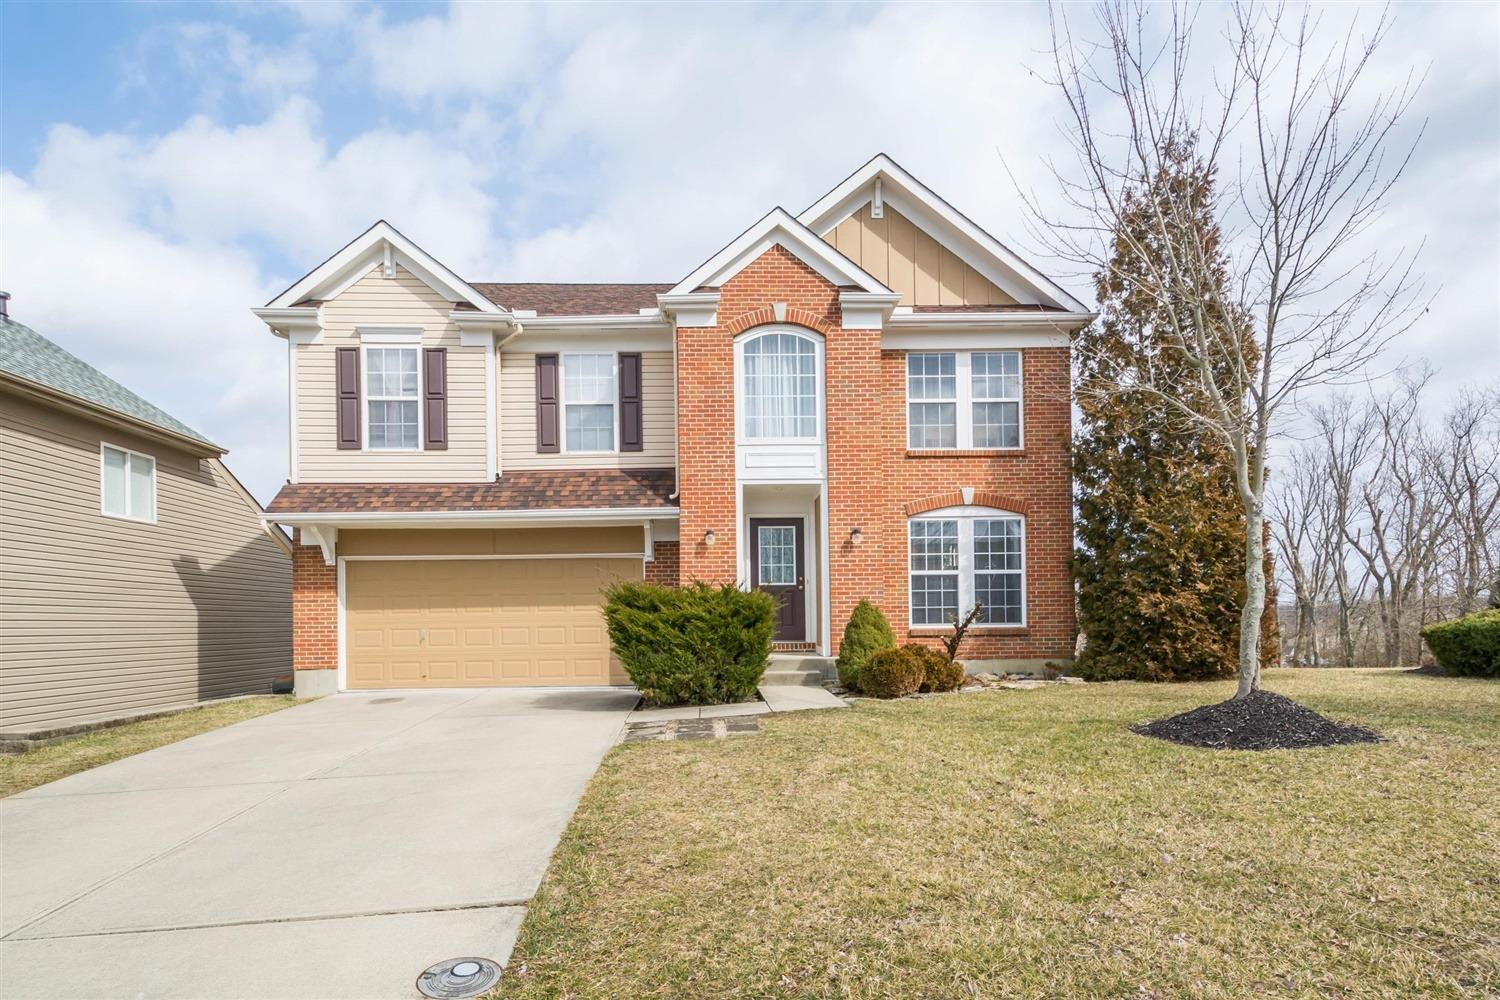 Property for sale at 7146 Ruwes Oak Drive, Green Twp,  Ohio 45248